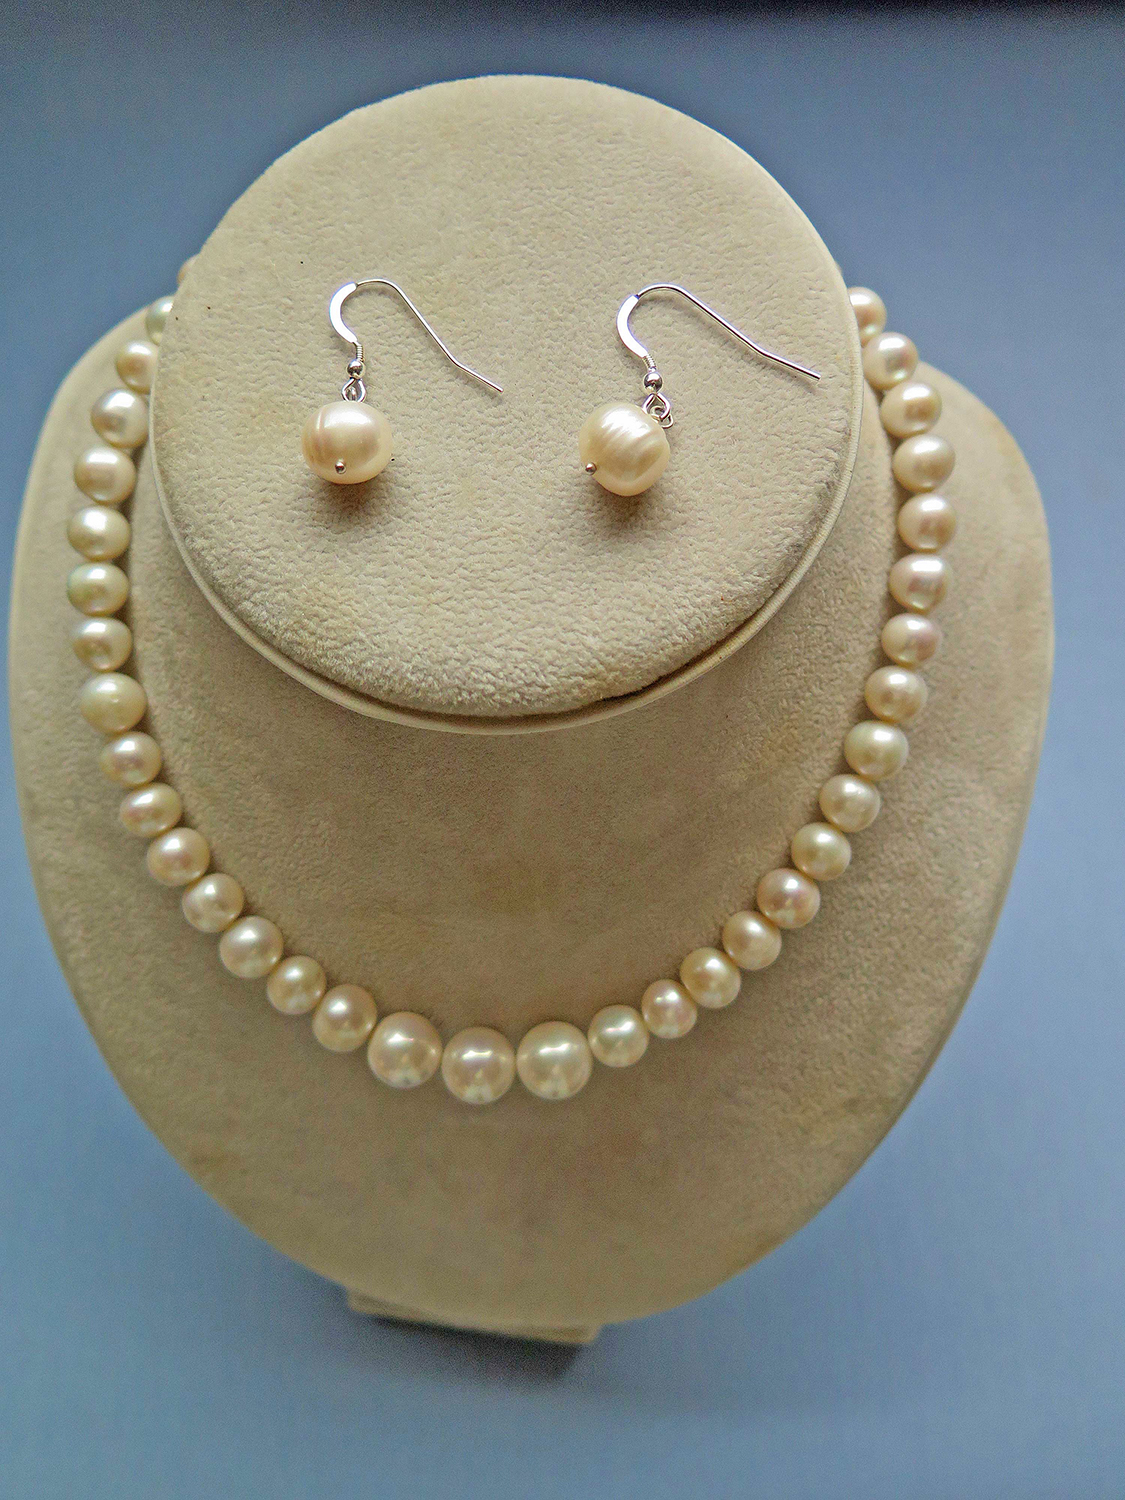 Cultured Pearl Necklace with Earrings - B Grade